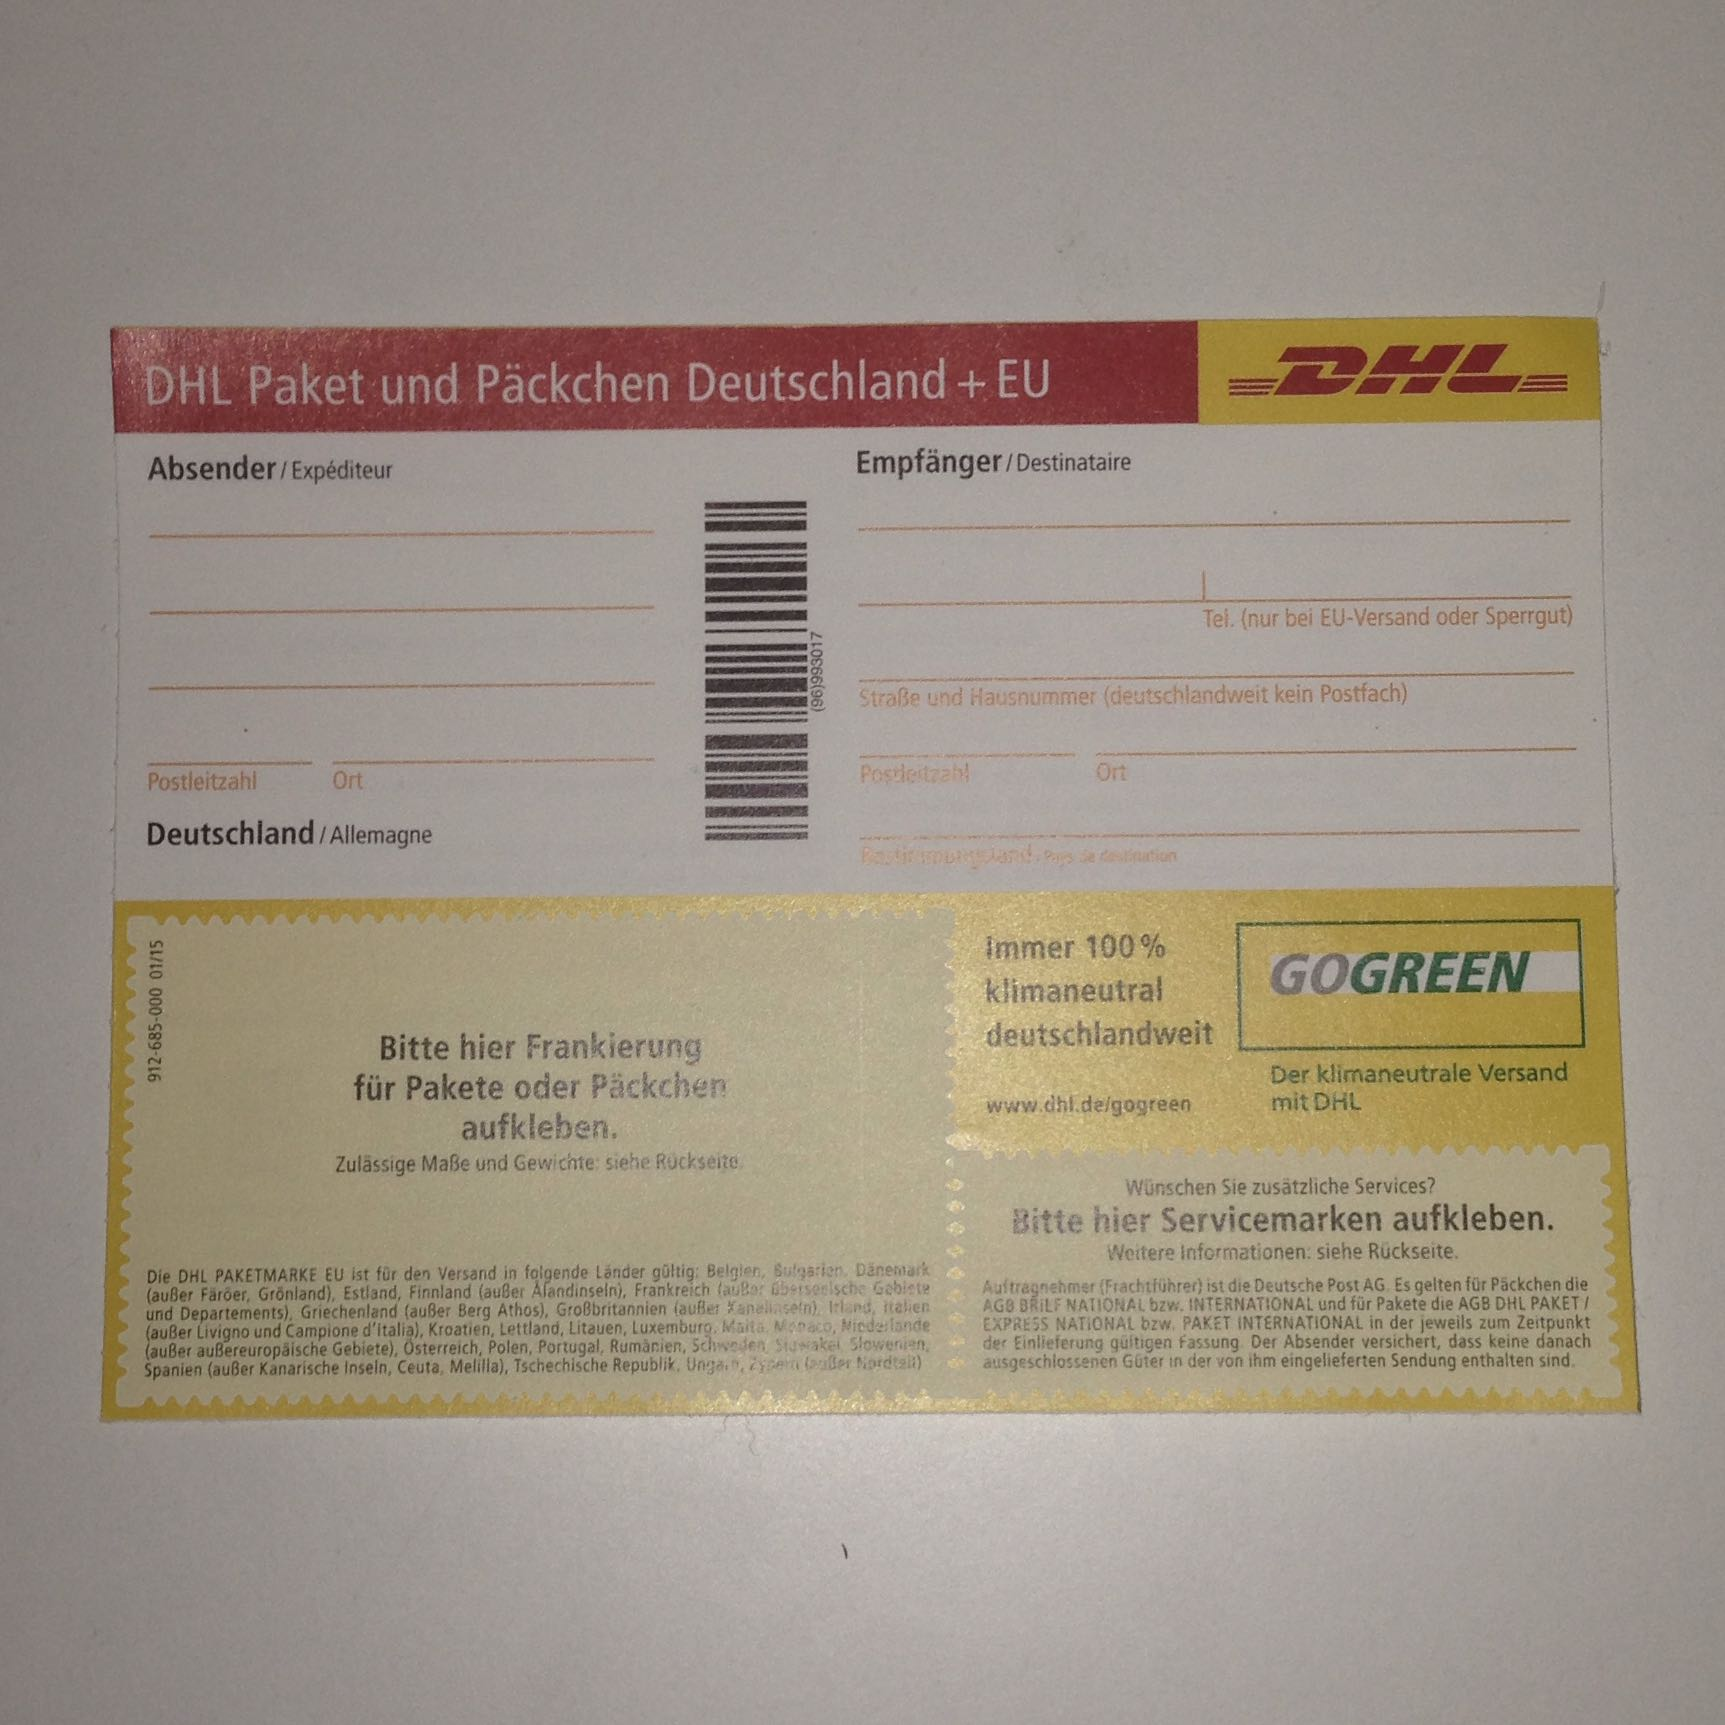 kann man die aufkleber von dhl auch auf briefe kleben post paket brief. Black Bedroom Furniture Sets. Home Design Ideas